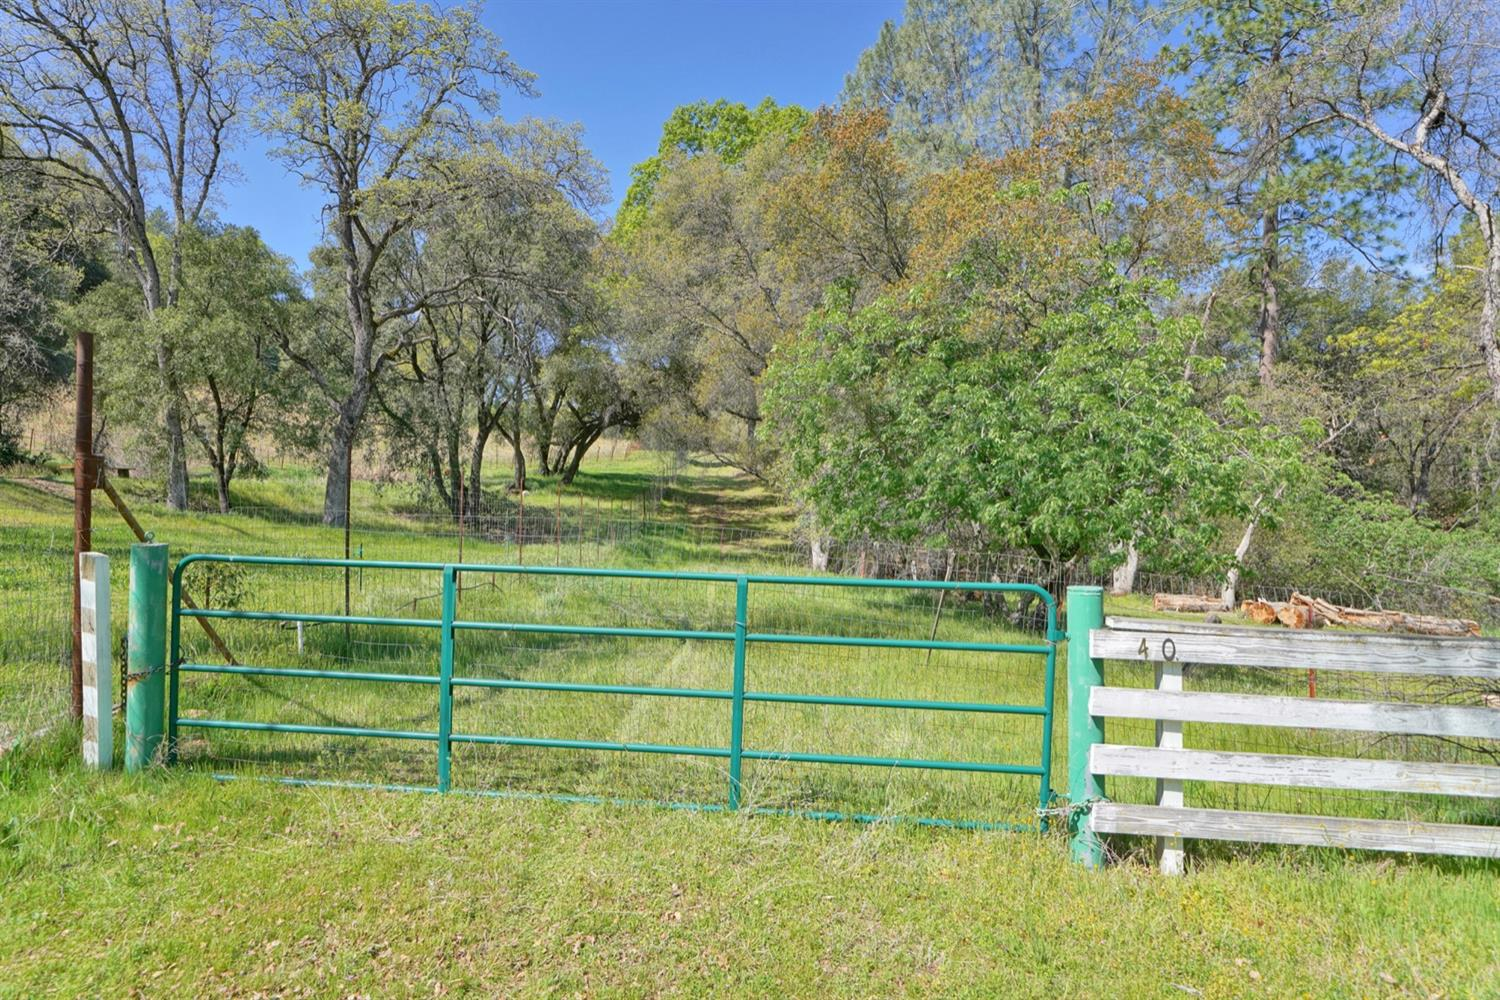 This is a beautiful 45 acre parcel in the heart of the Somerset wine country with award winning wineries close by.  There are lovely long range views of the Sierra range and some wonderful building sites. Interested in a vineyard? equestrian set-up? or your dream home - this is it. The property dead ends off Omo Ranch Road.  As the vegetation dries and the risk of fire increases, please avoid driving beyond the gate. Thank you.